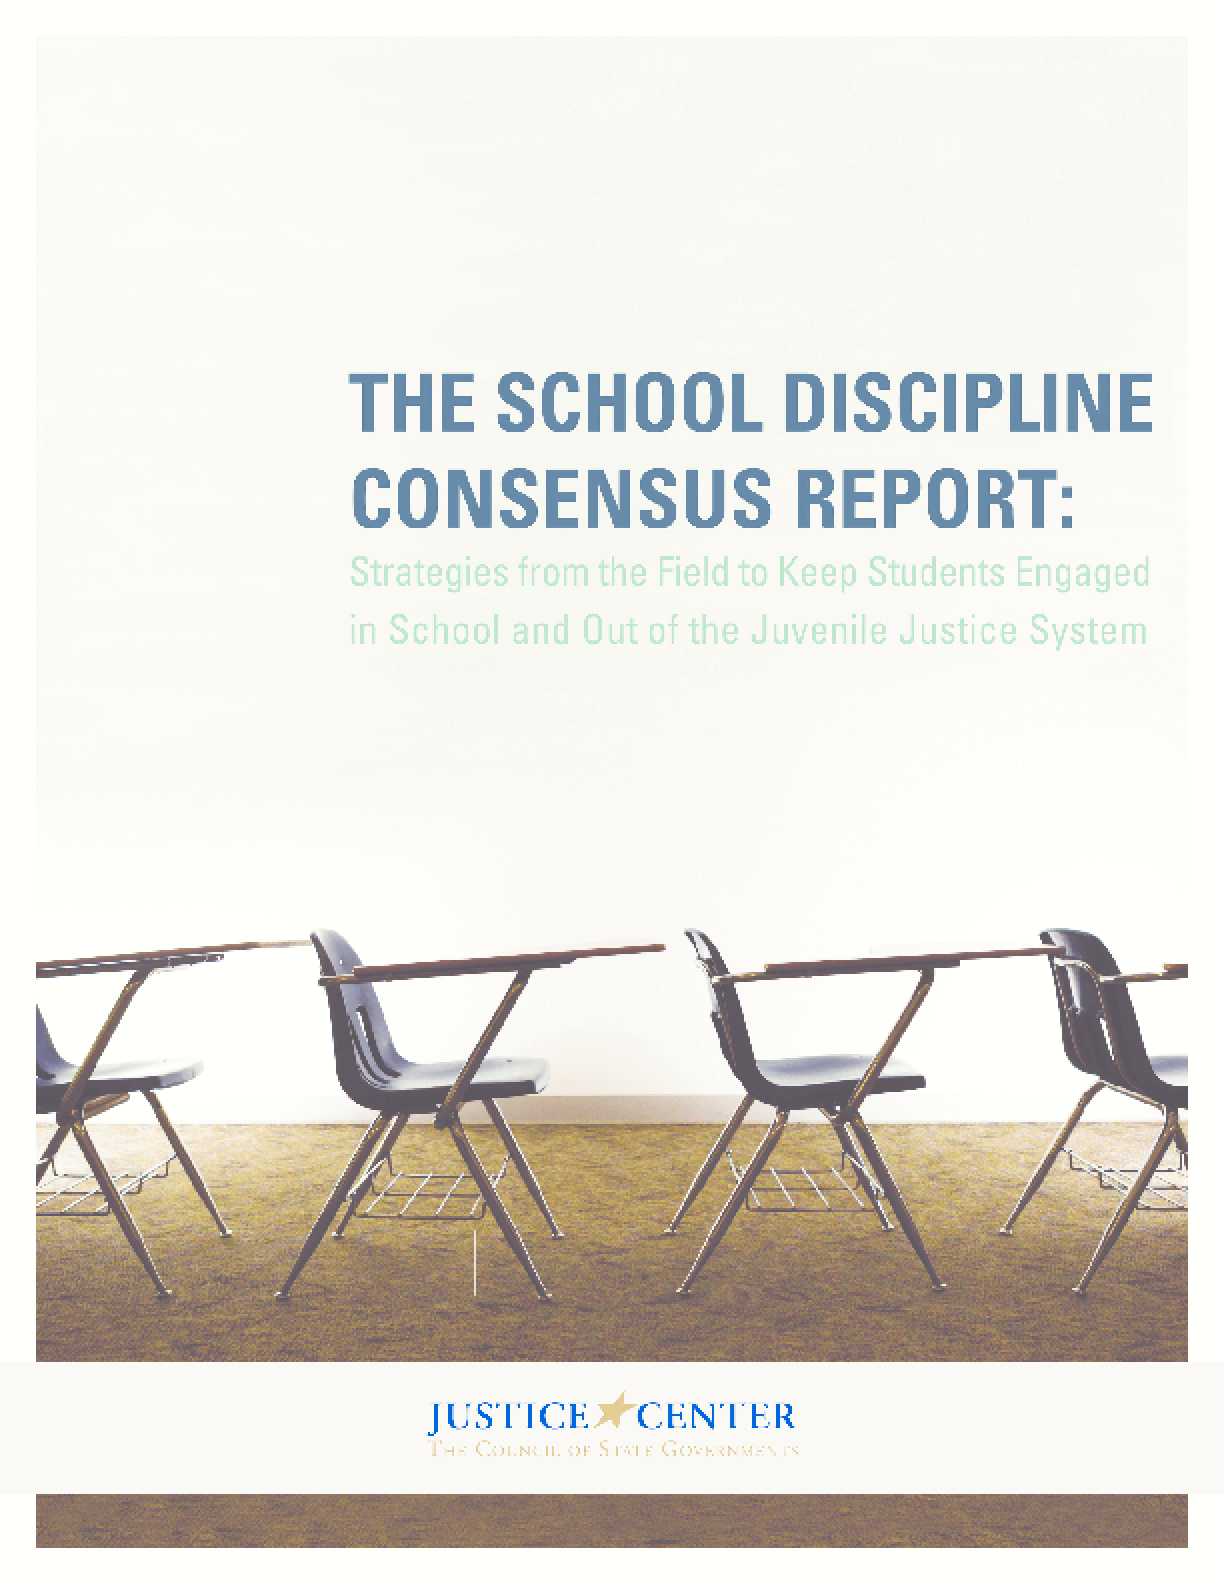 School Discipline Consensus Report: Strategies from the Field to Keep Students Engaged in School and Out of the Juvenile Justice System, The